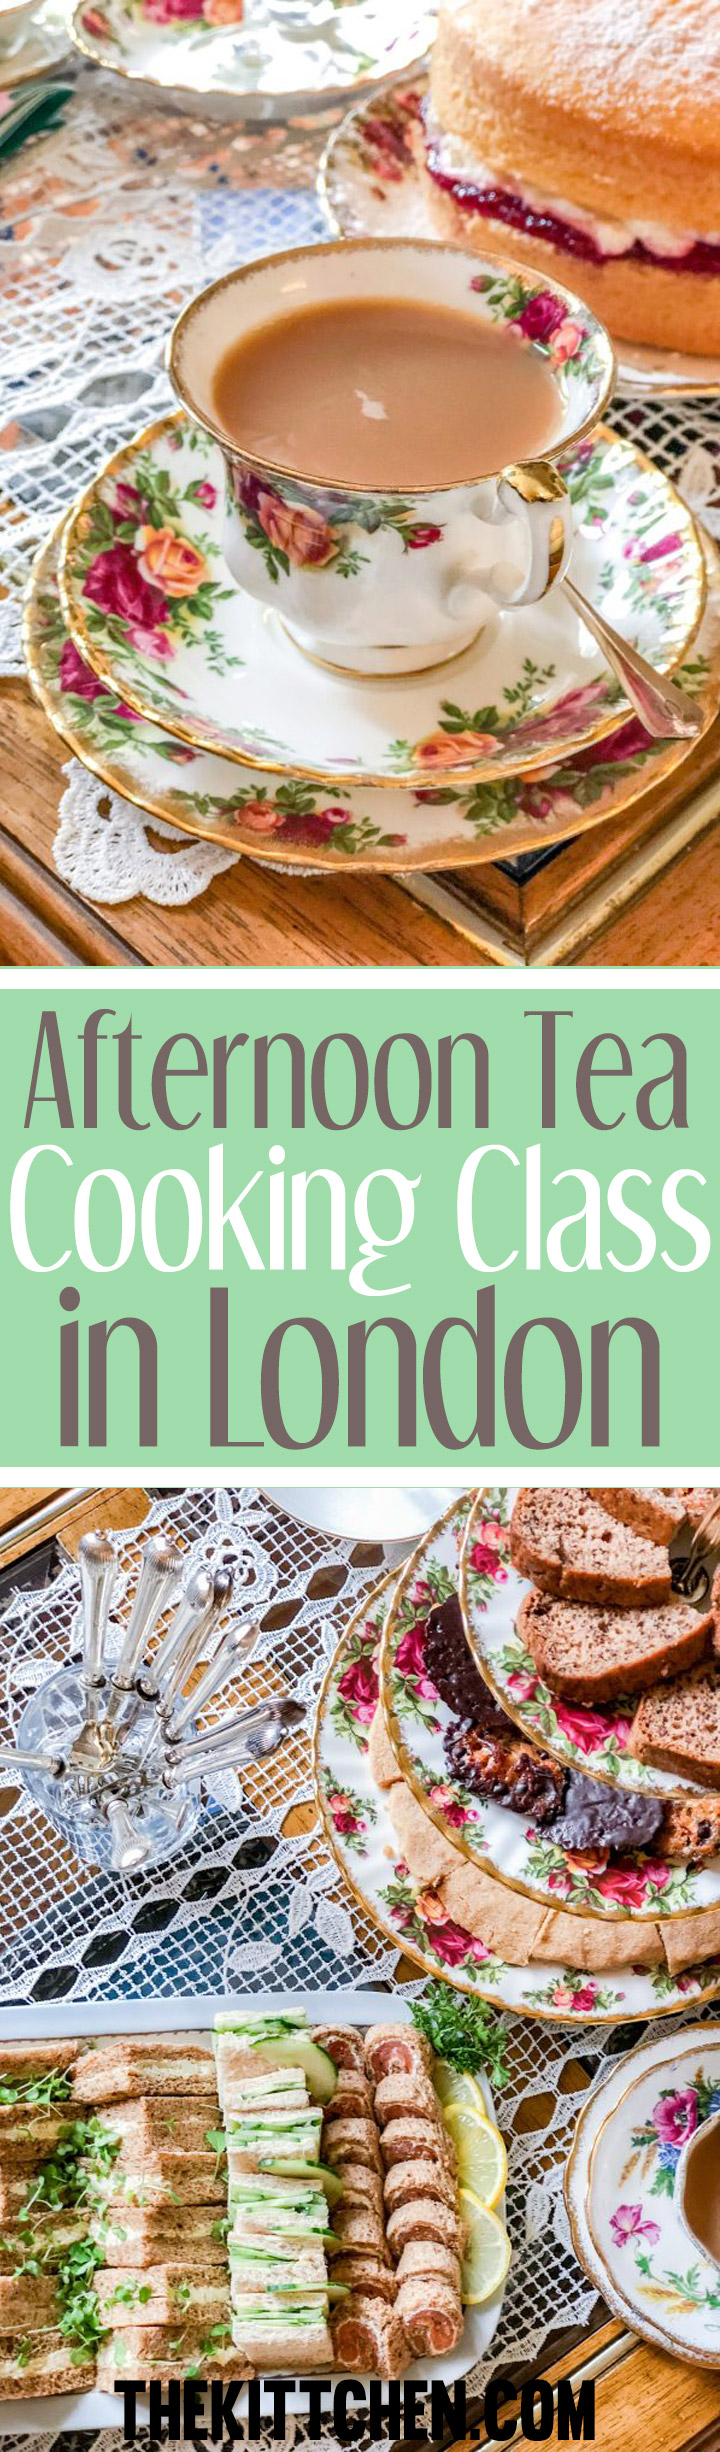 Afternoon Tea is the prime example of how extraordinary British food can be. The ceremony of it, the delicious finger sandwiches, the warm scones, and the pretty desserts are simply wonderful.